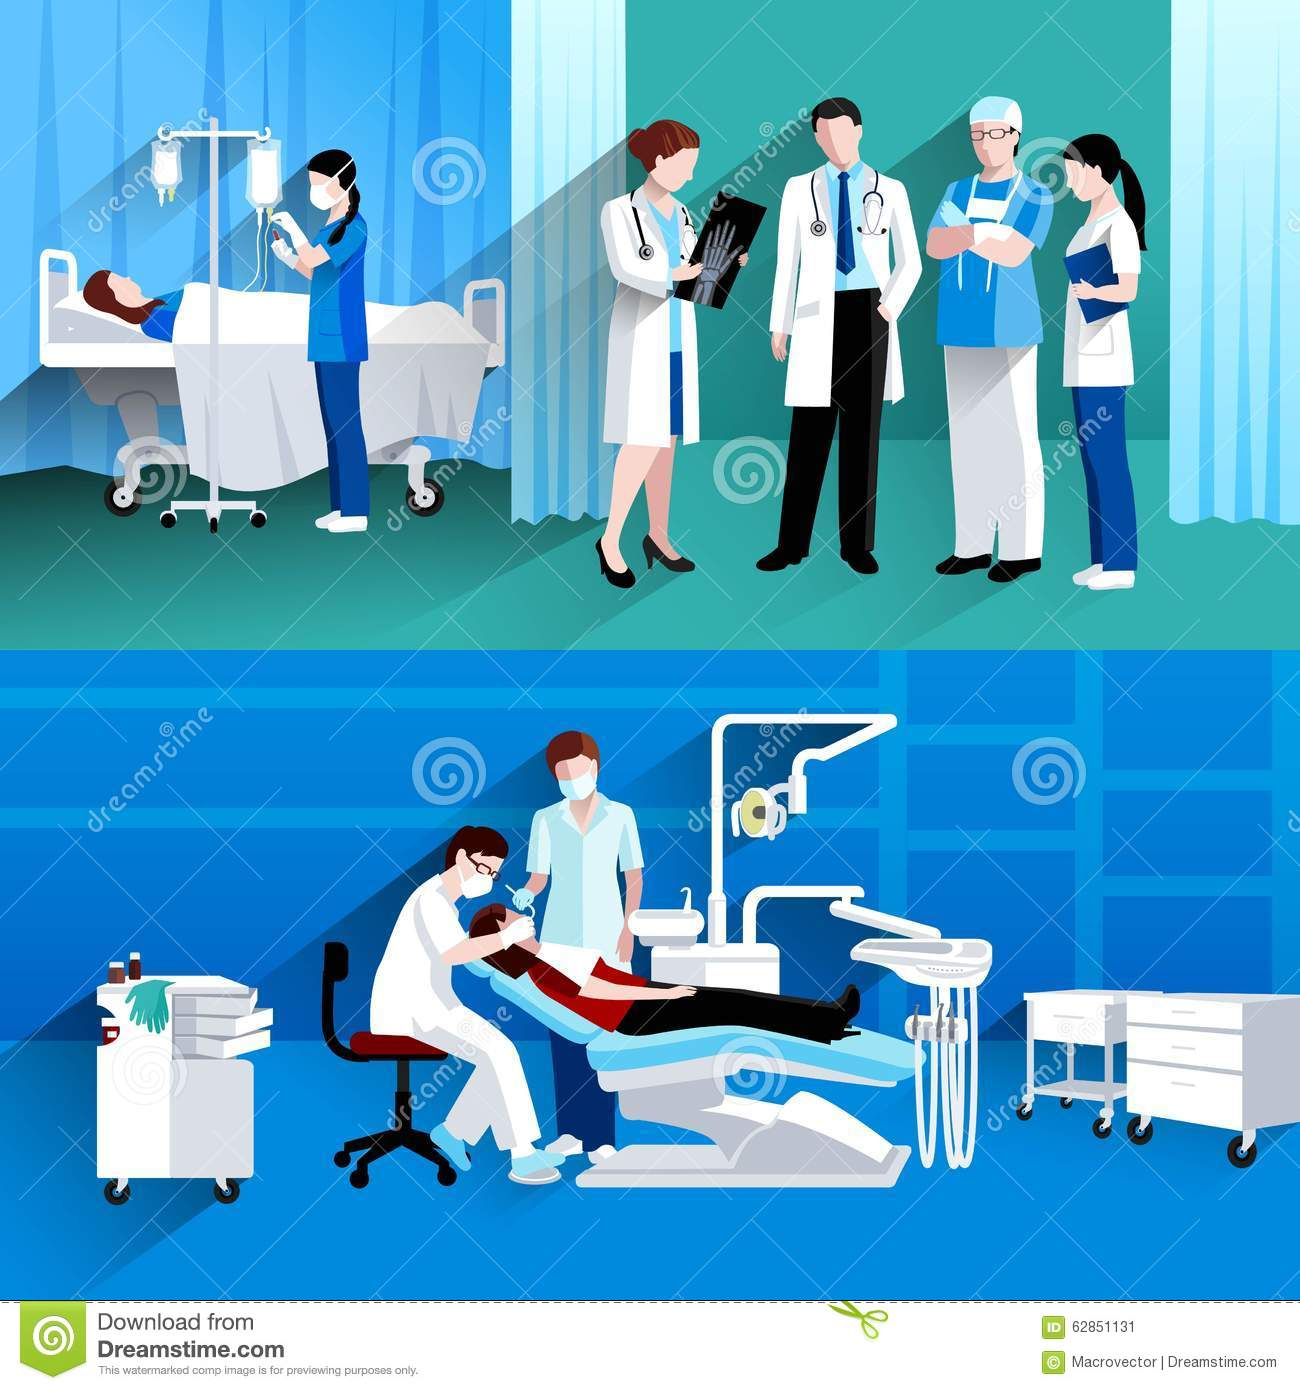 Doctor Consultation Banners Beauty Fashion Banners